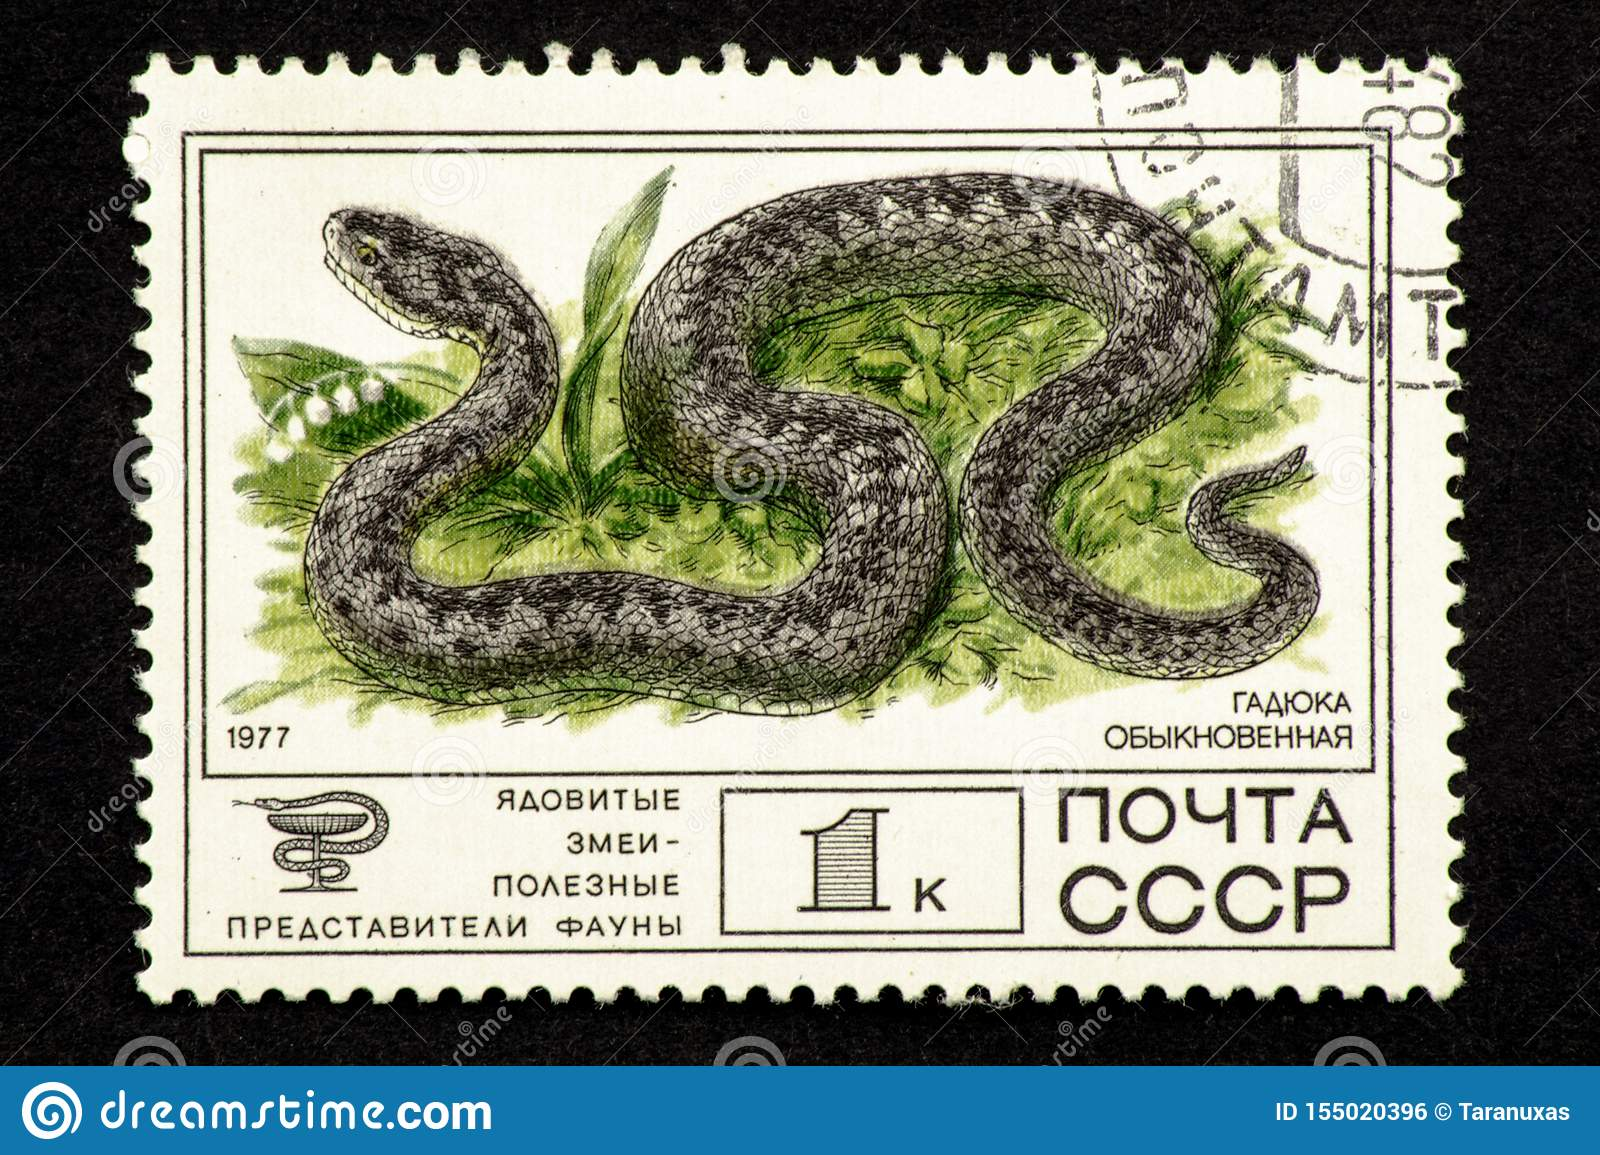 07.24.2019 Divnoe, Stavropol Territory, Russia. USSR postage stamp 1977. Series - Poisonous snakes are useful representatives of a